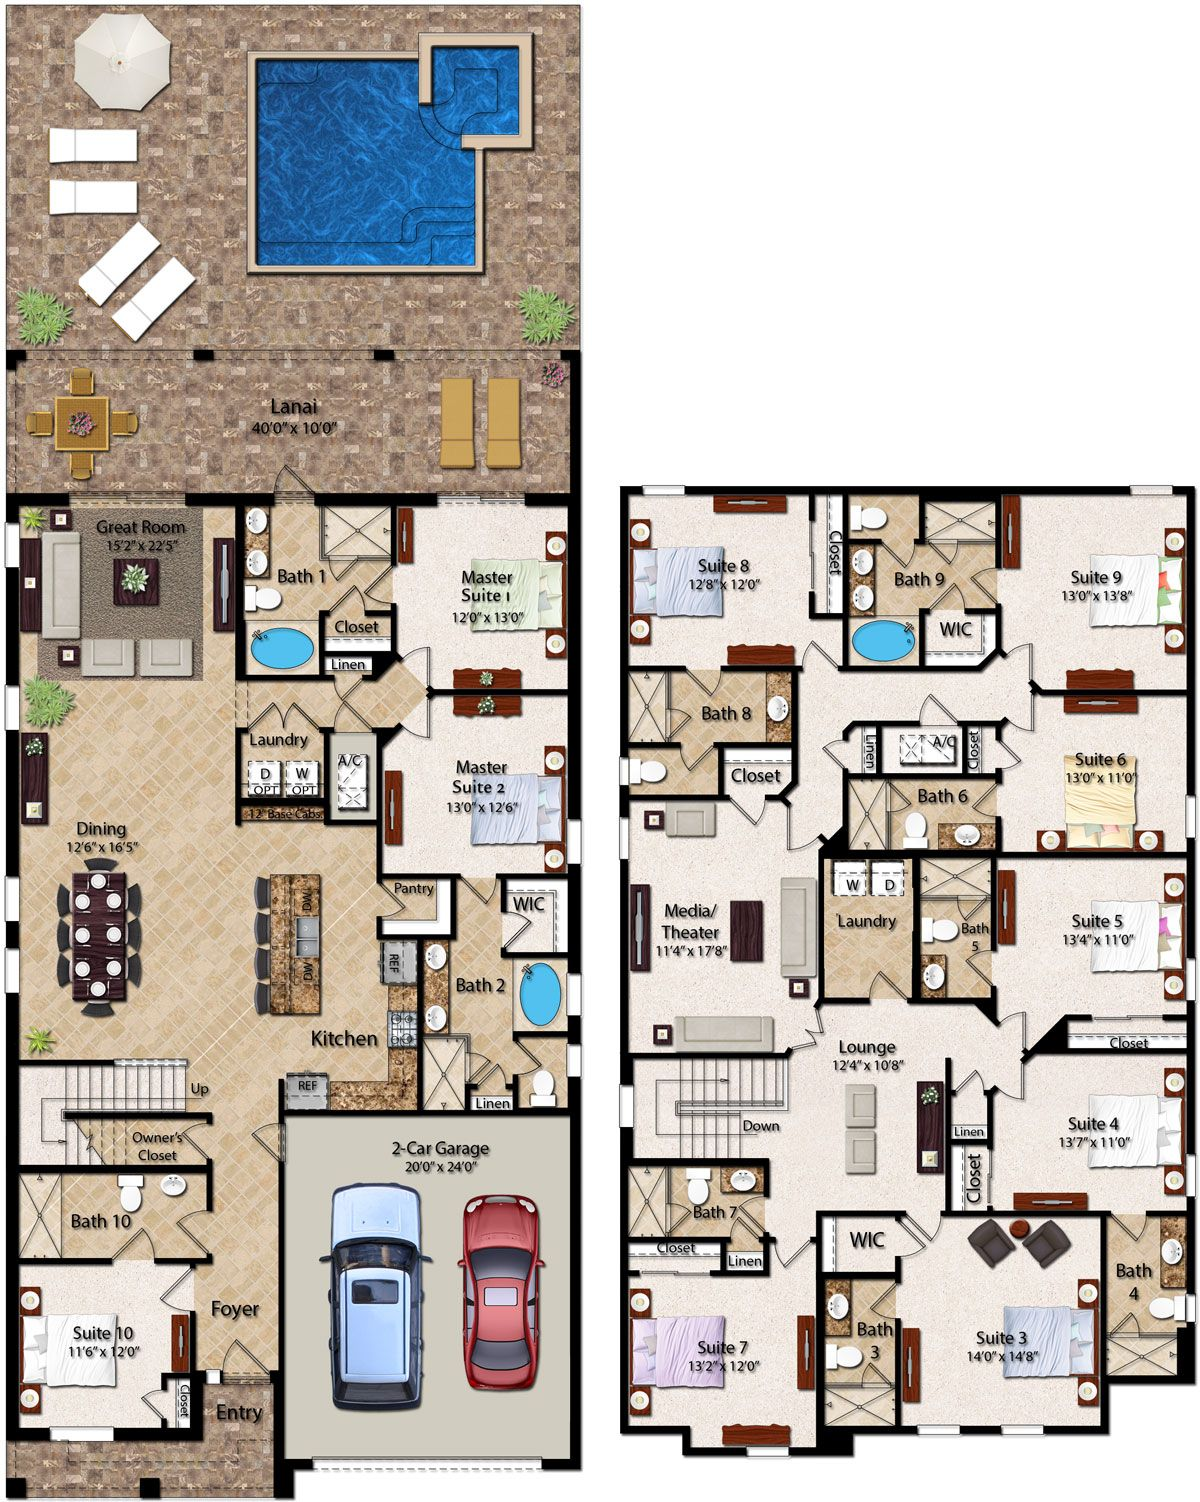 10 Bedroom Homes With 4 724 Square Feet The Two Story 10 Bedroom Residence Features Three Master Suites Two On House Layout Plans House Plans House Layouts